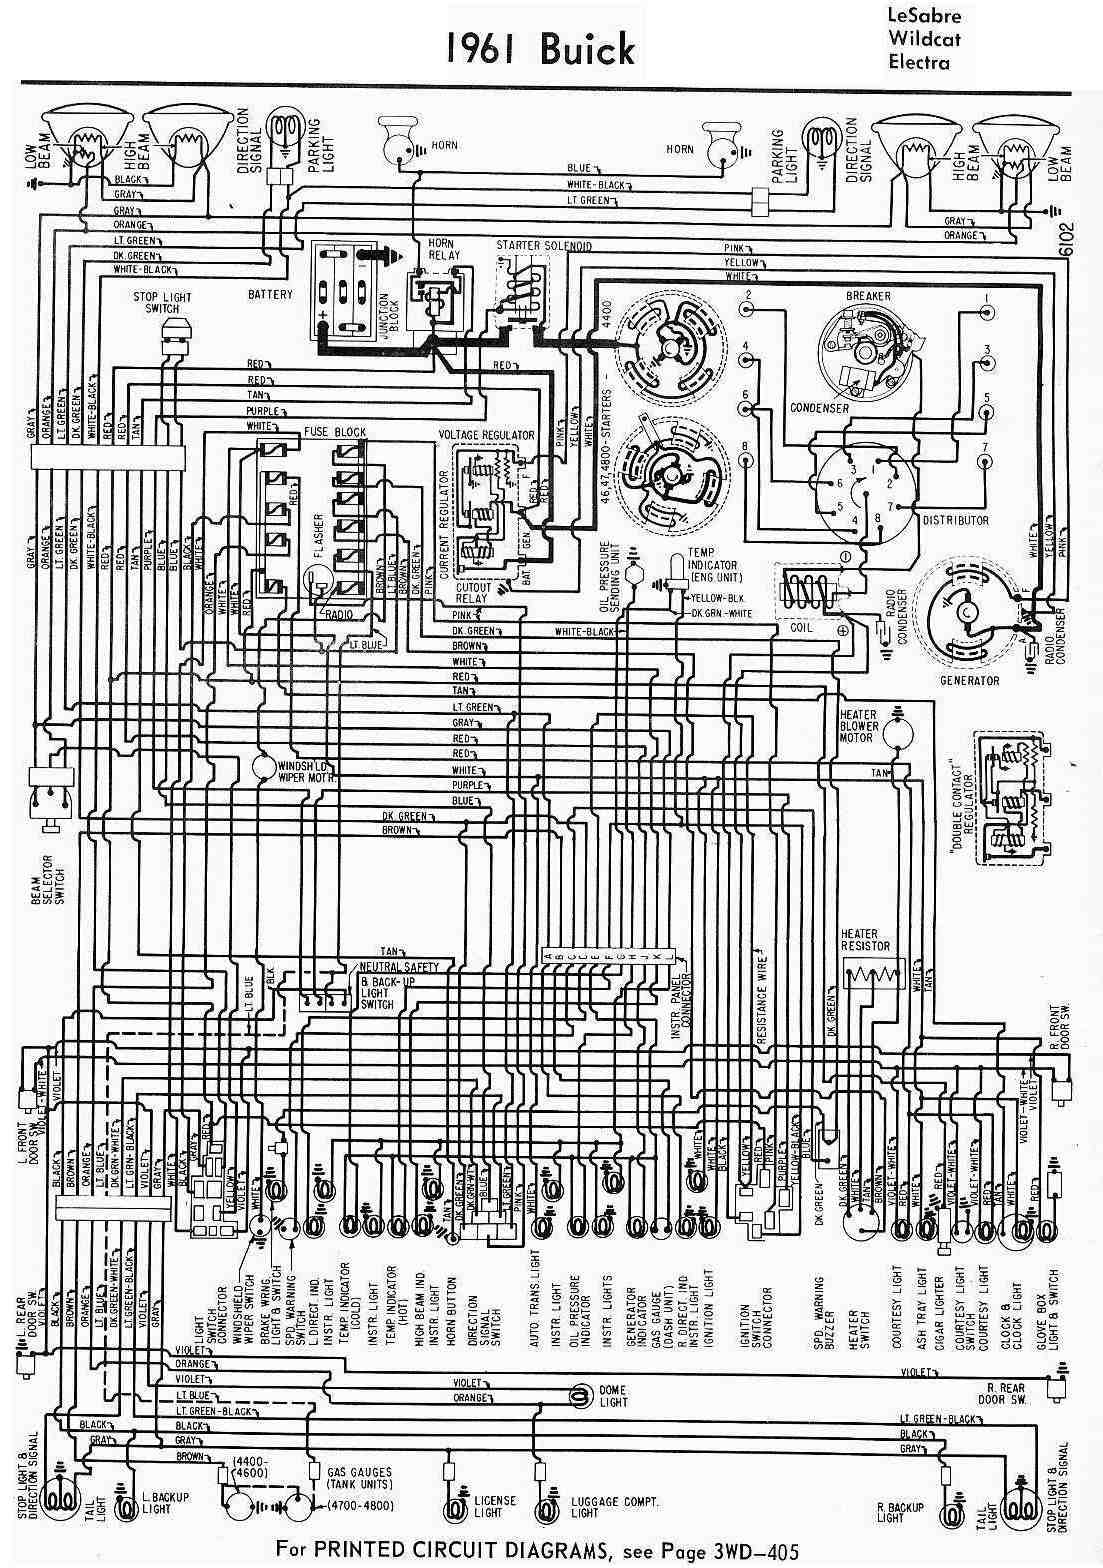 medium resolution of 2004 buick lesabre wiring diagram advance wiring diagrambuick lesabre wiring diagram wiring diagram inside 2004 buick